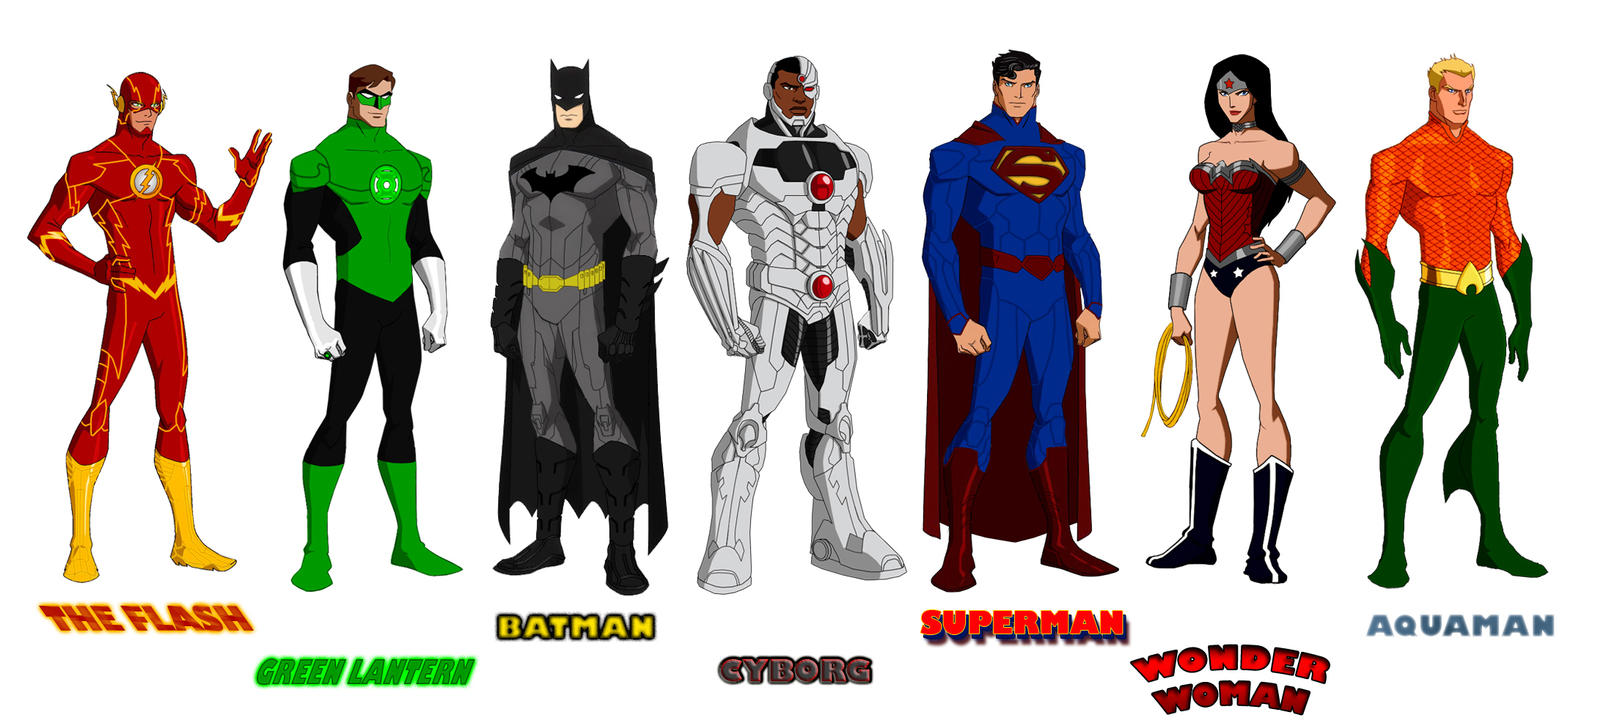 Justice League New 52, Phil Bourassa's style by Majinlordx on ... Justice League Unlimited Cyborg